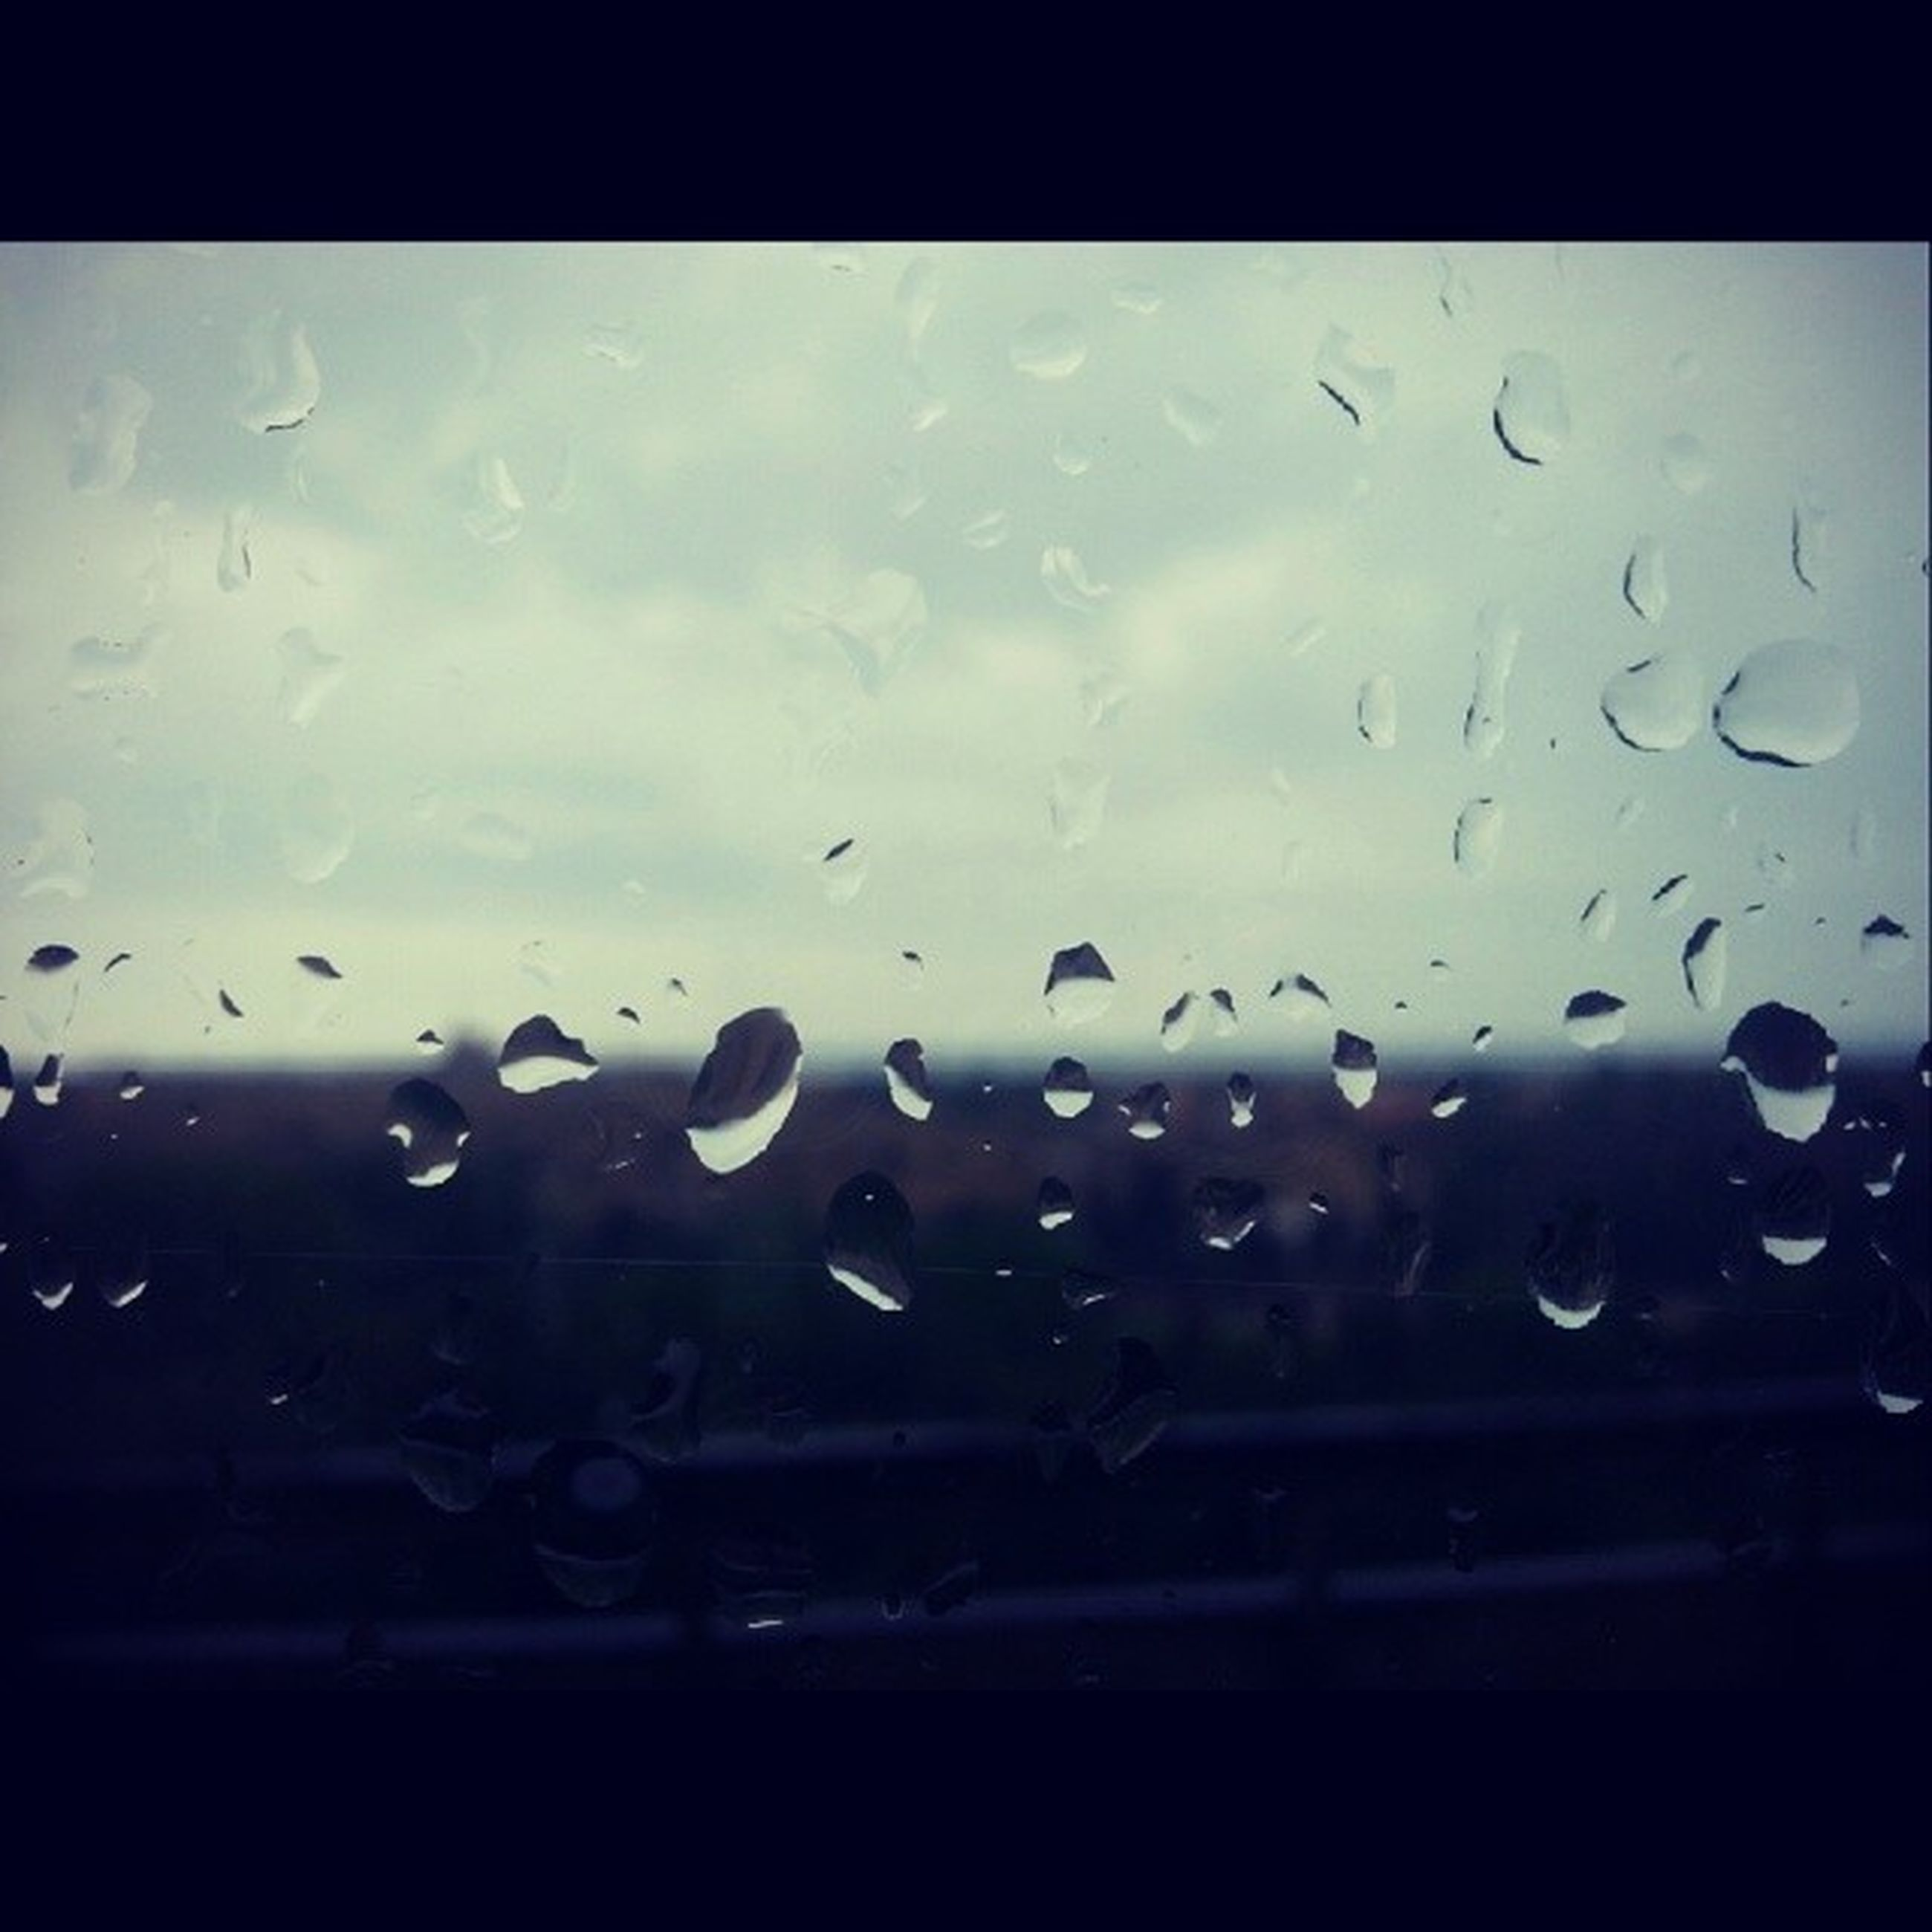 drop, window, wet, transparent, water, glass - material, rain, sky, indoors, raindrop, weather, transportation, car, glass, mode of transport, vehicle interior, silhouette, focus on foreground, land vehicle, nature